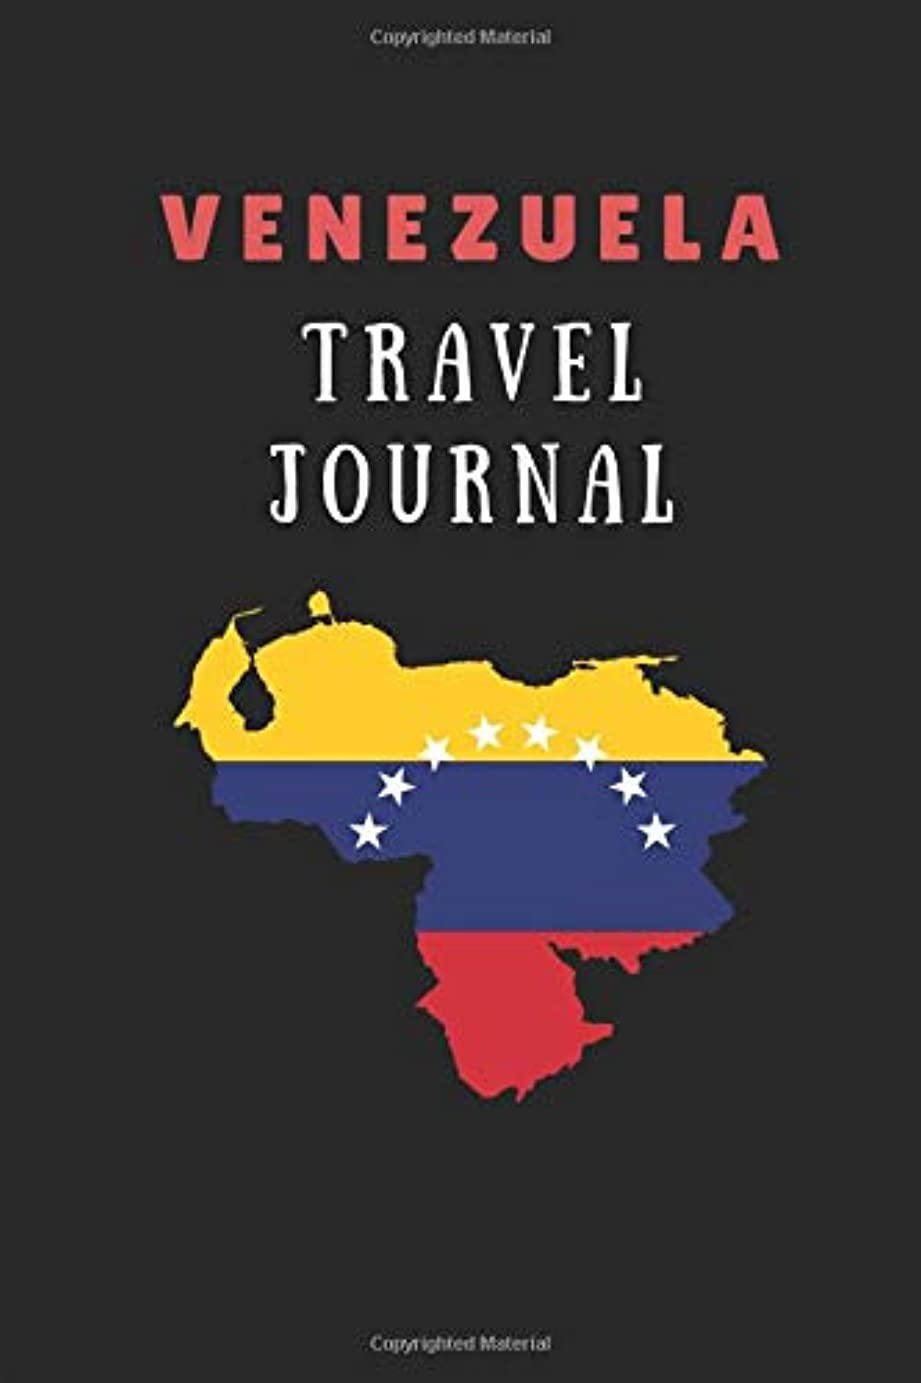 焦げフィードバック石鹸Venezuela Travel Journal: 2 in 1 Notebook Combining Lined Writing Paper and Itinerary List Paper For Holiday Trips